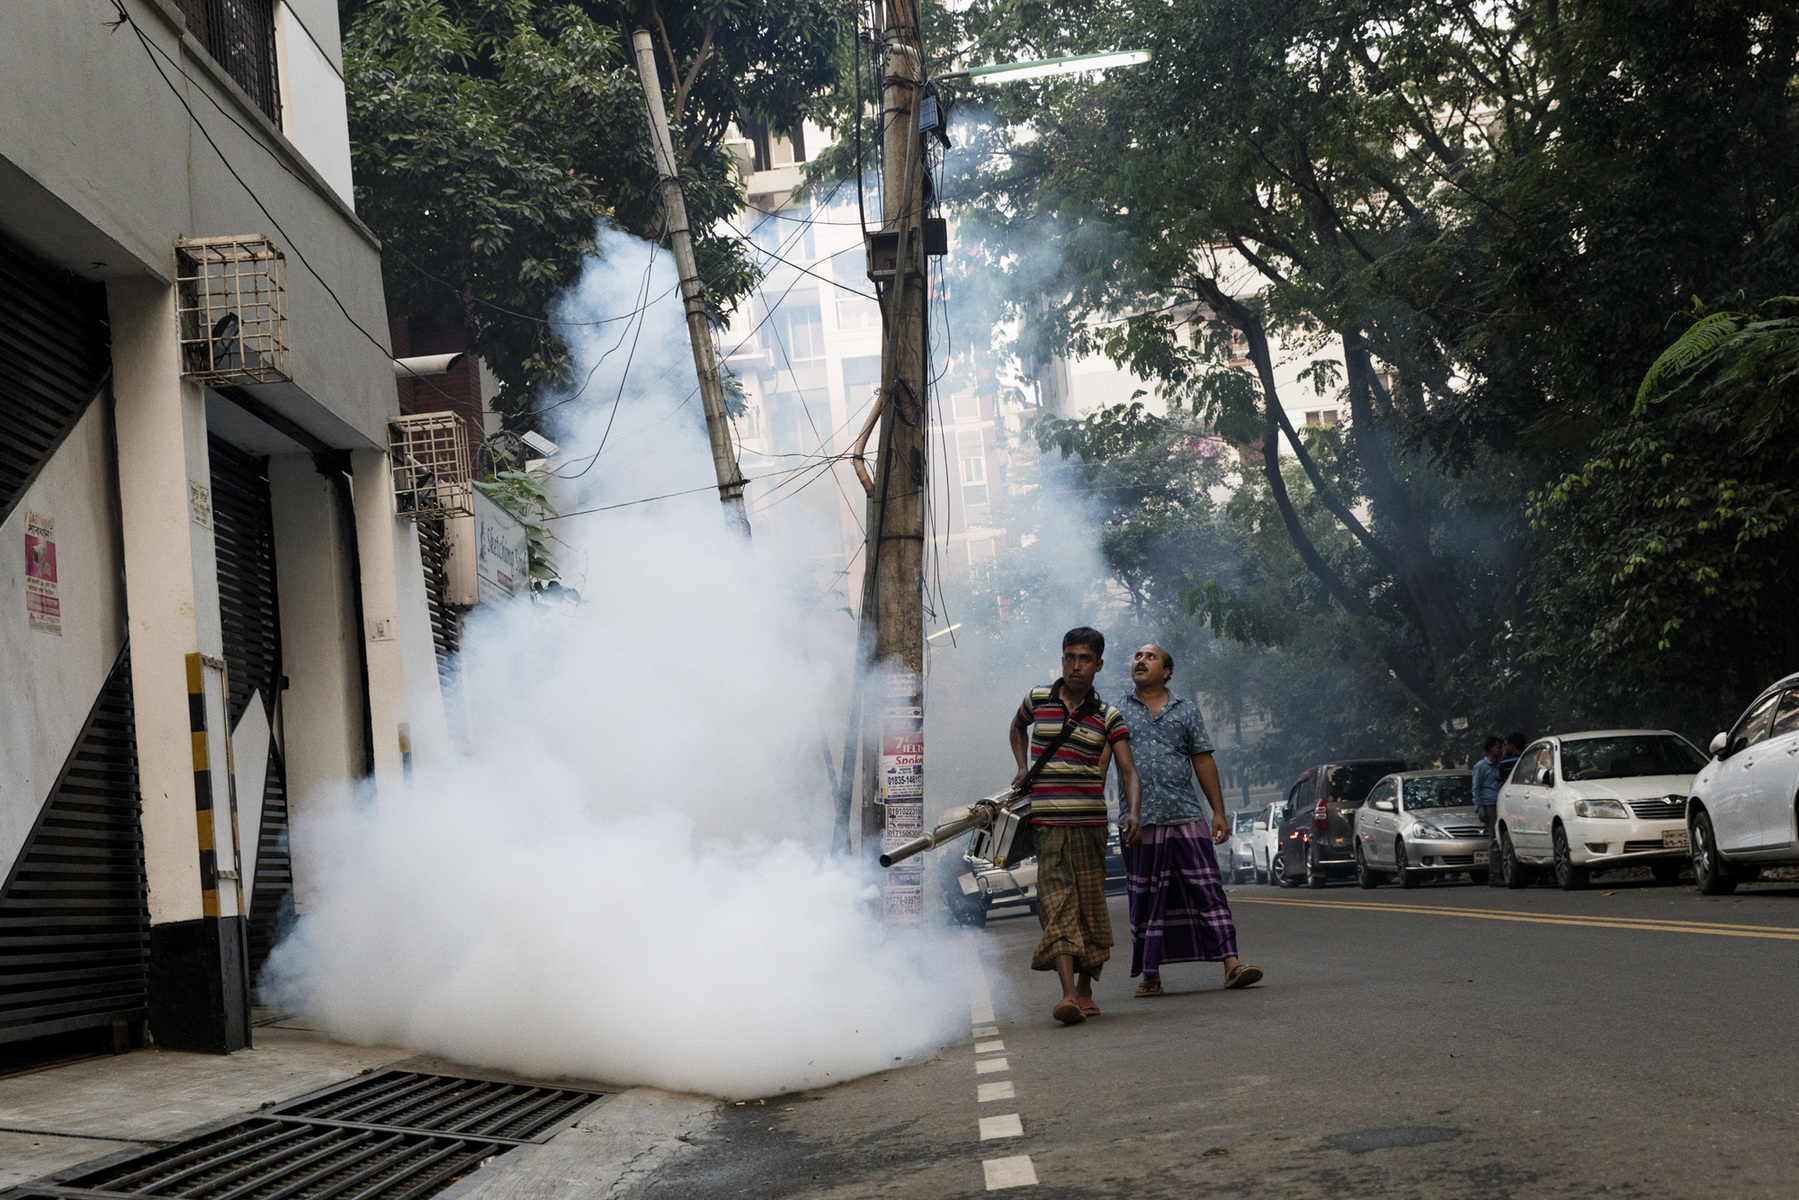 "Adrienne Surprenant - 24/10/2018, Uttara, Bangladesh— A man paid by the city corporation sprays the streets of Uttara, a ""model town"" in the North suburbs of Dhaka that boomed in the past 20 years. High middle-class neighborhoods are sprayed more often than the poorer areas of the capital but the residents seem unsure of the spraying's regularity: some say it is done daily, others once a month."